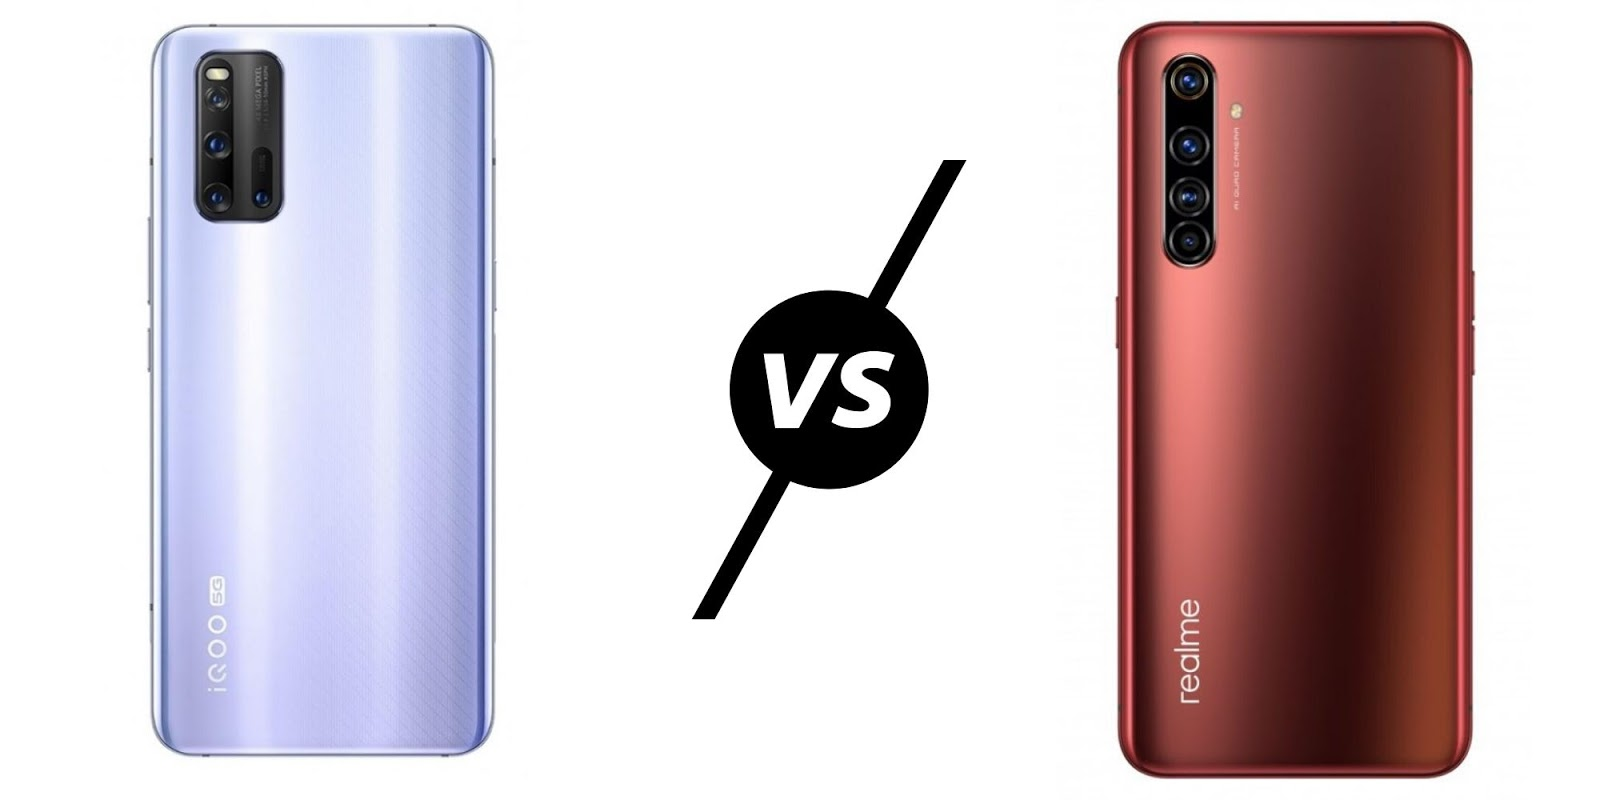 iQOO 3 5G vs Realme X50 Pro 5G: Who Won the Price and Features?